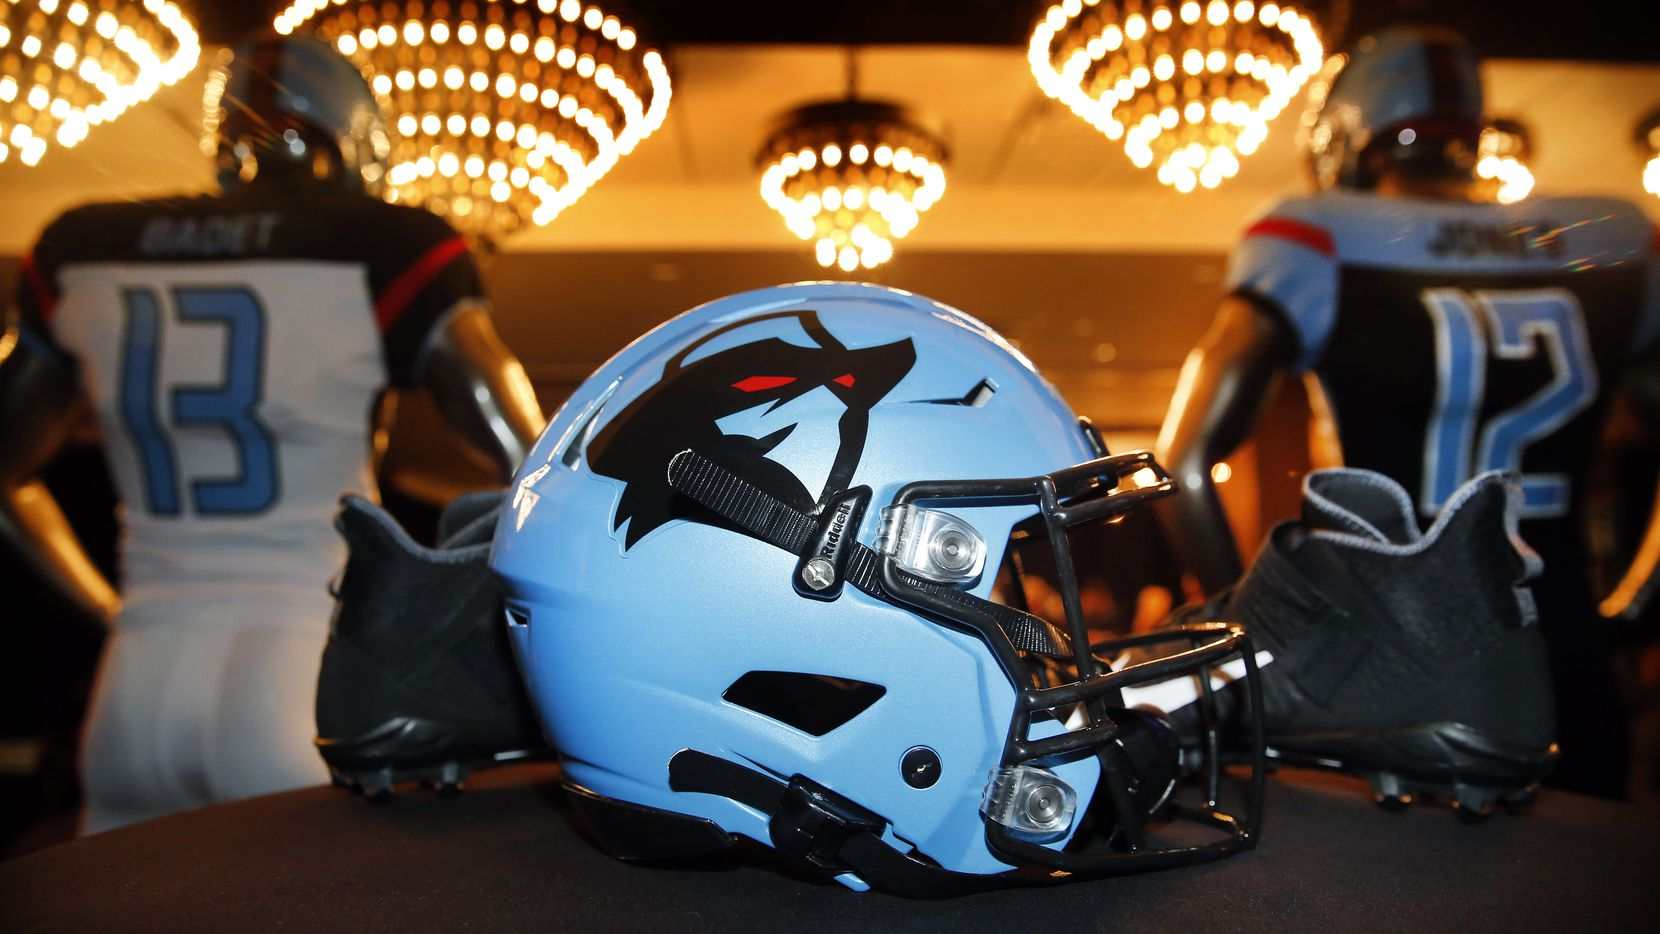 Dallas Renegades, the area's new XFL pro football team, unveiled their new uniforms during a team event at an Arlington, Texas hotel, Tuesday, December 3, 2019.